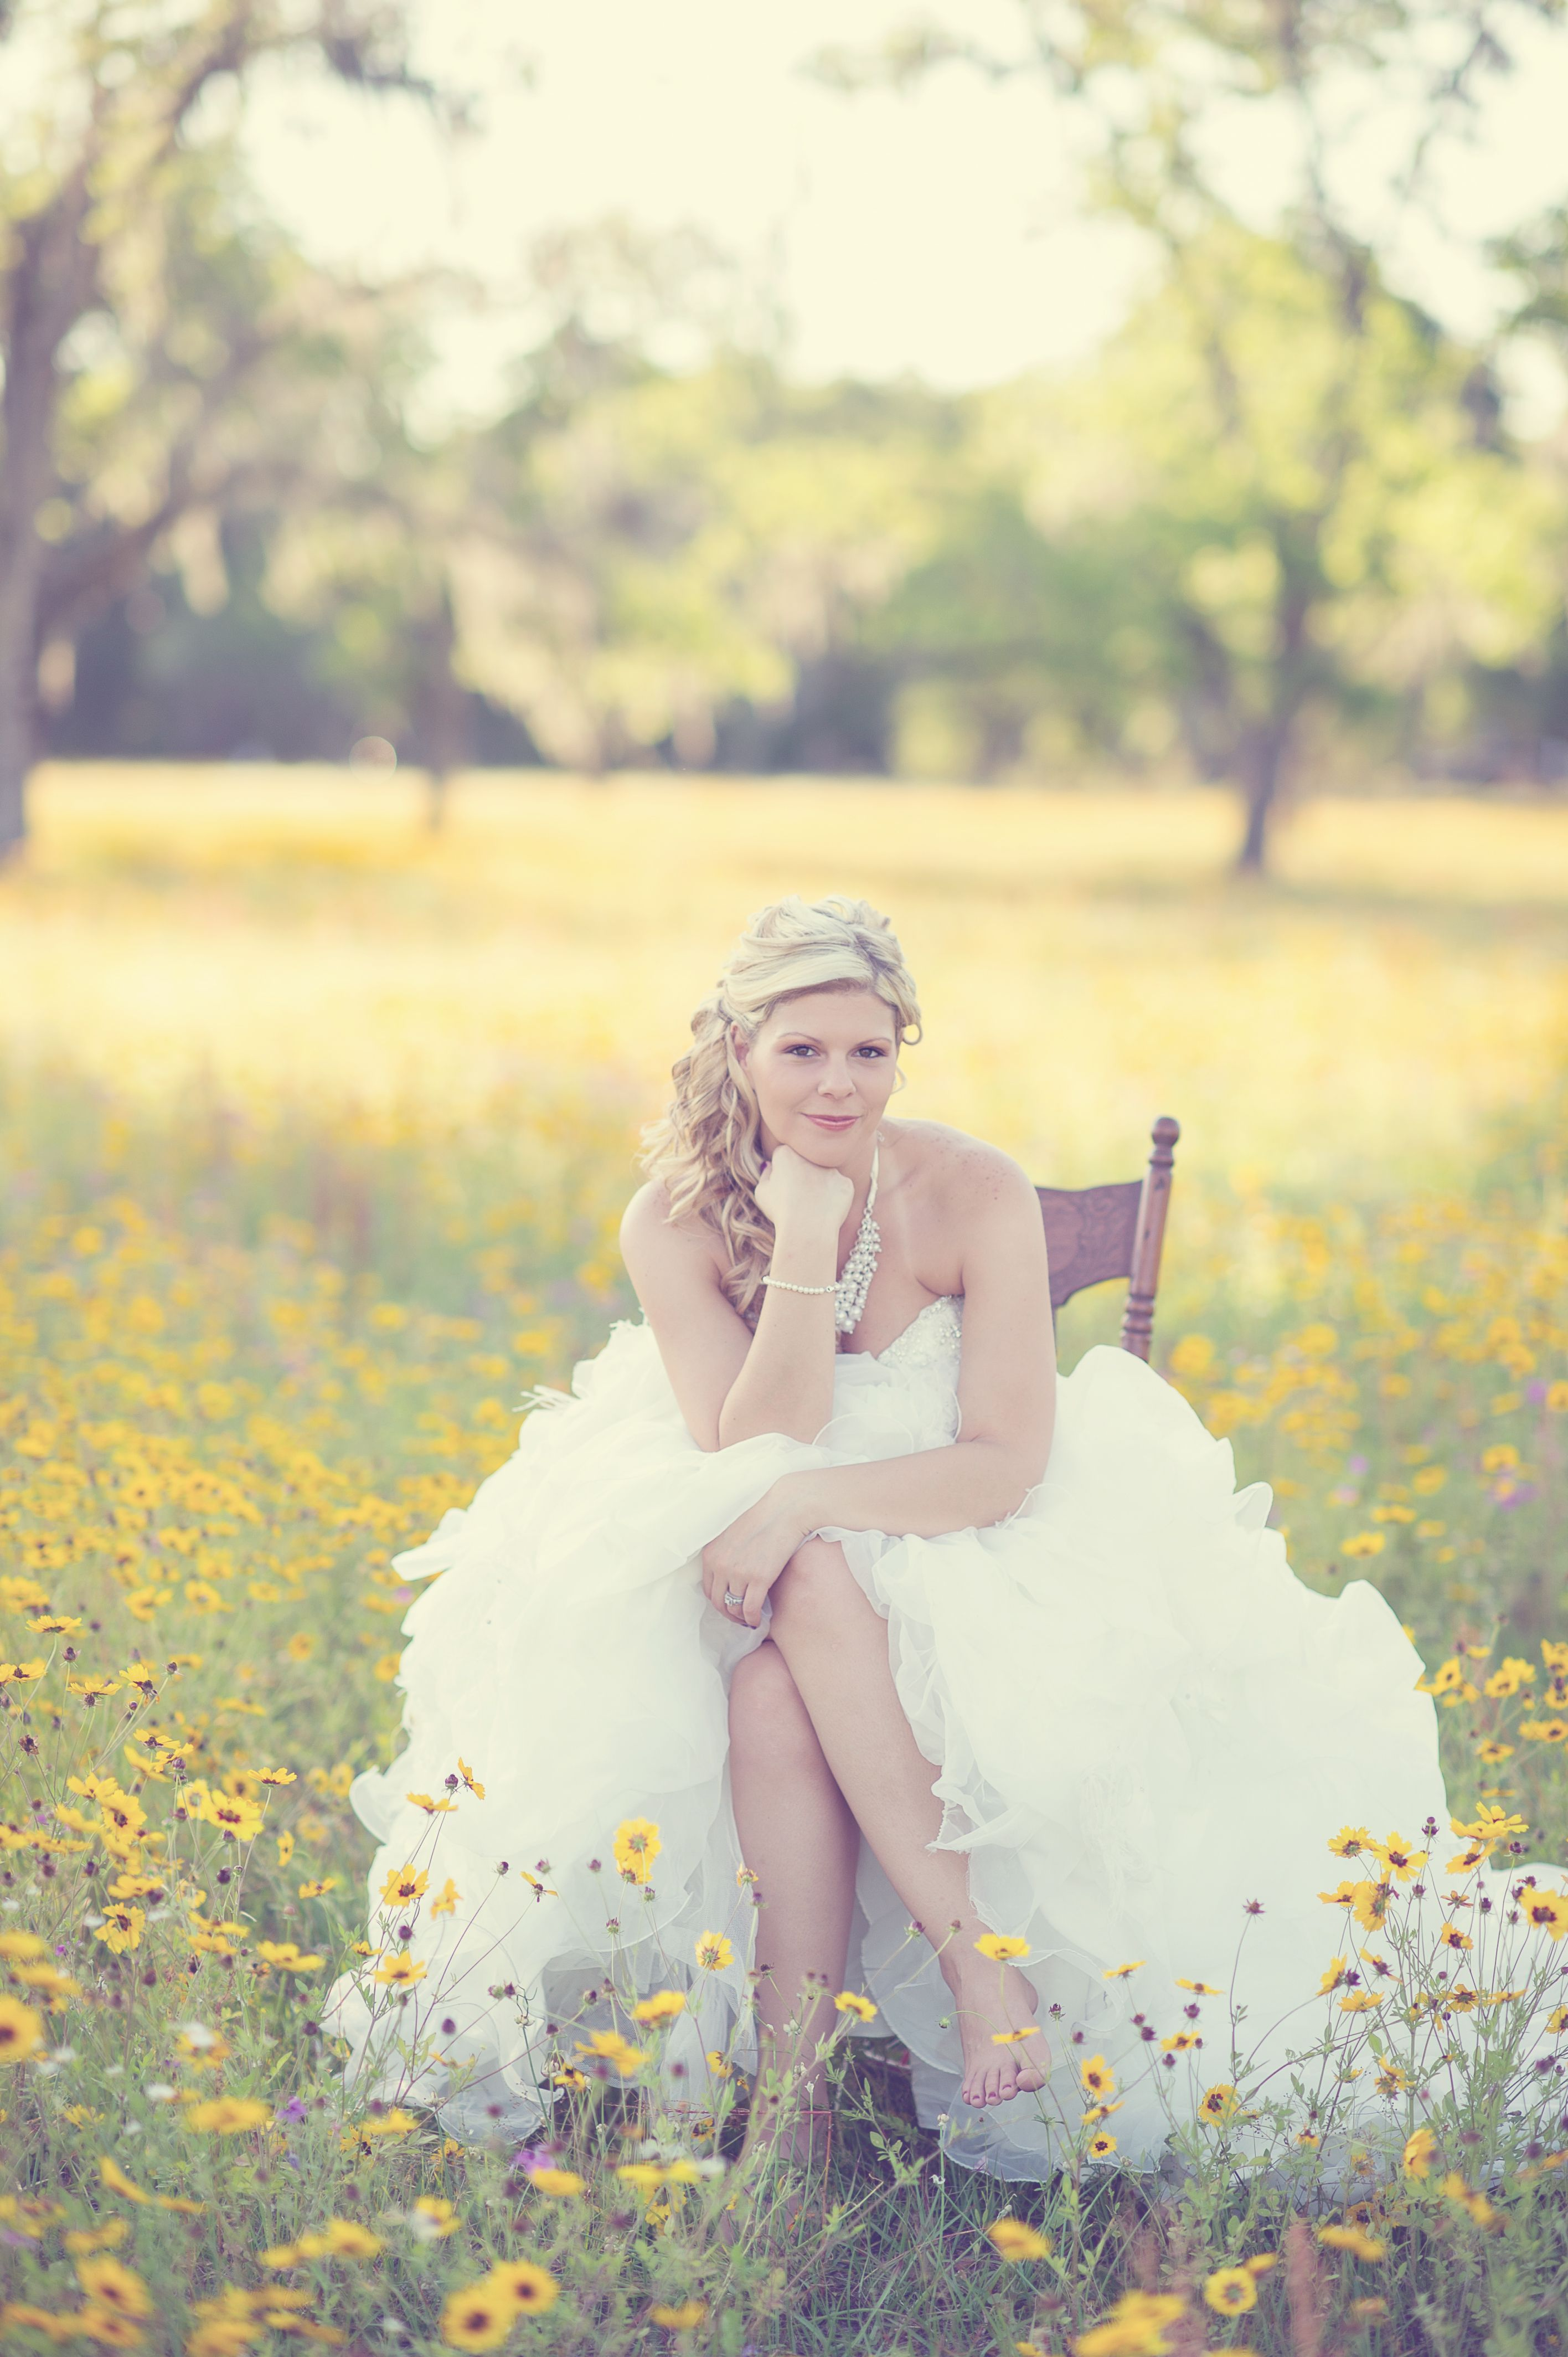 Outdoor Photography Wedding: Rustic Wedding Photography, Southern Weddings, Vintage